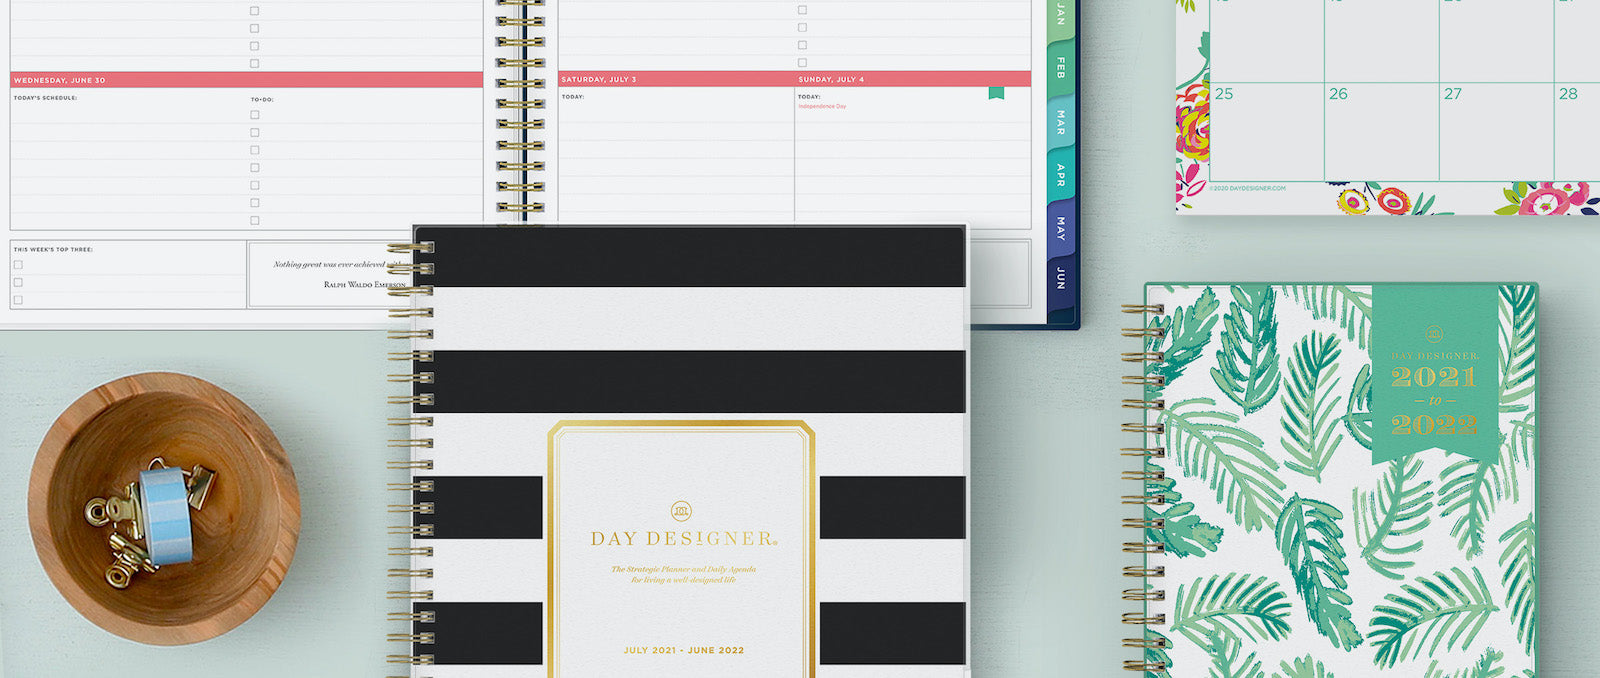 Day Designer for Blue Sky Planners